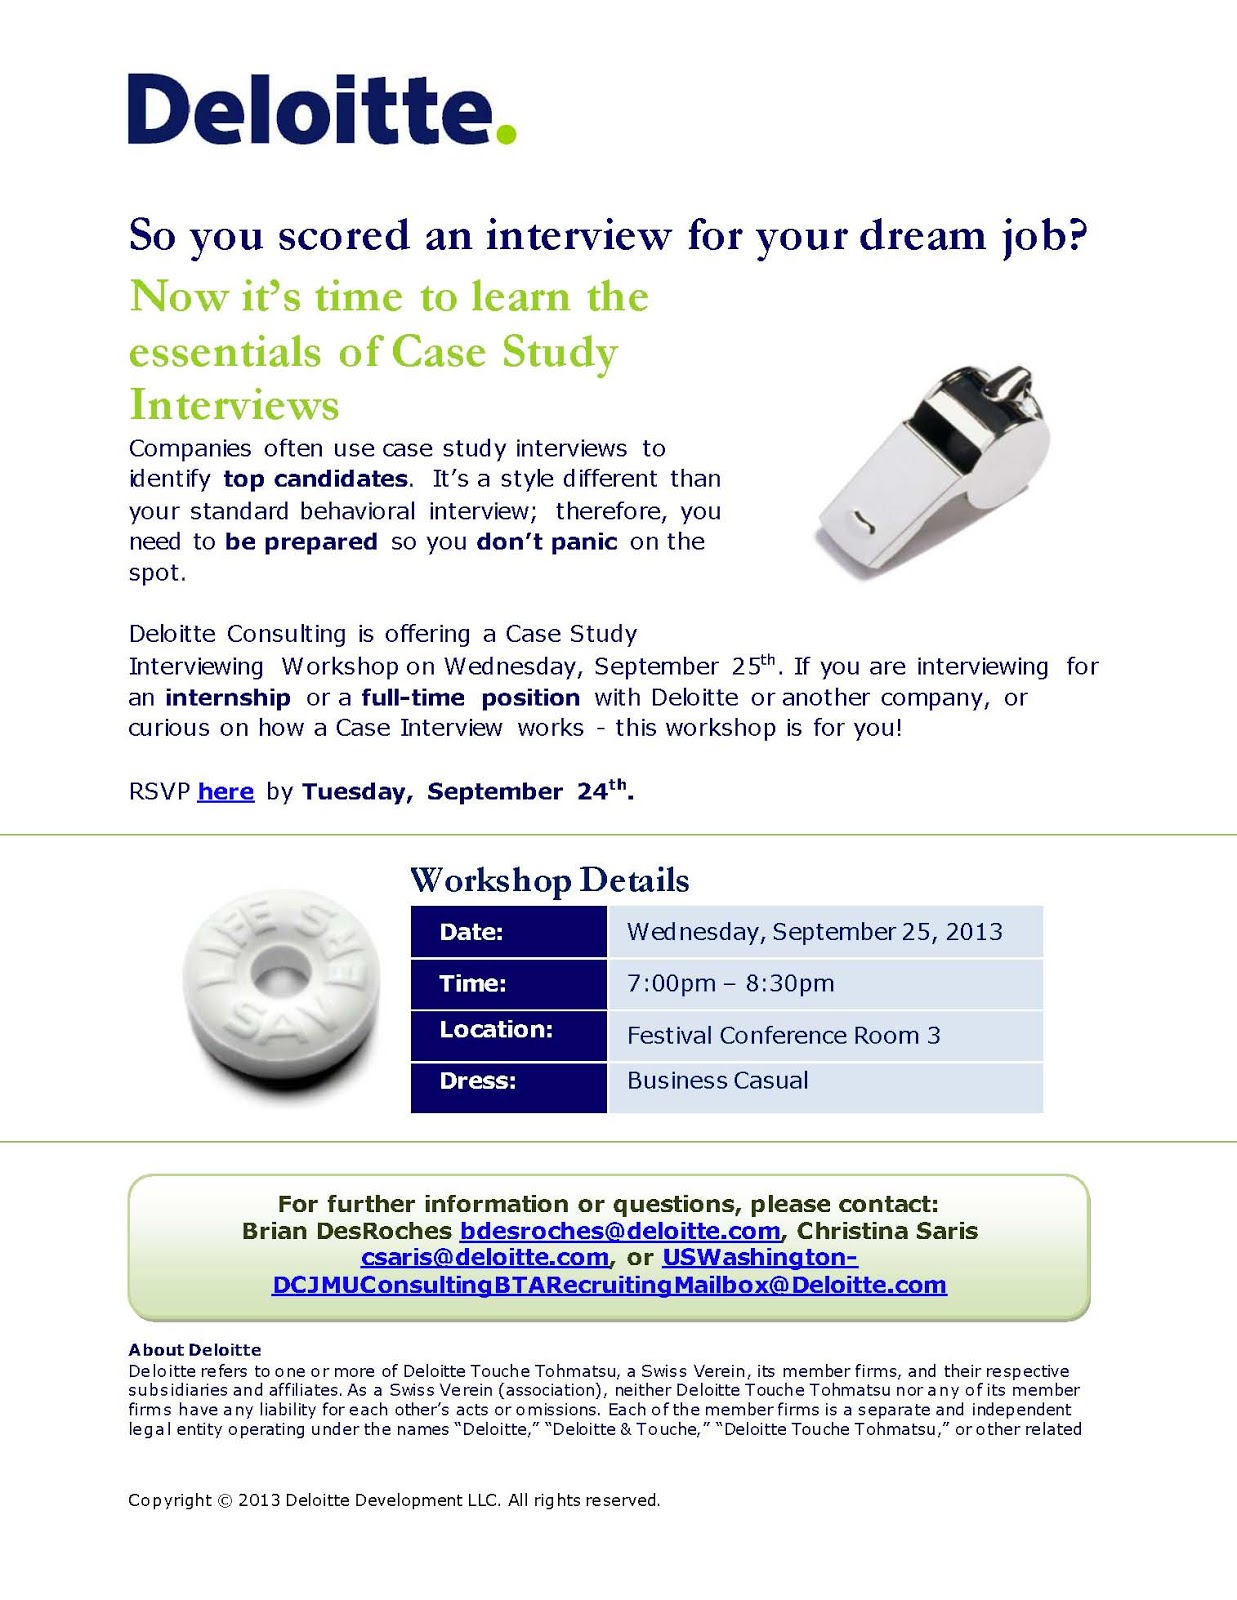 deloitte first round interview case study Case study interview at deloitte